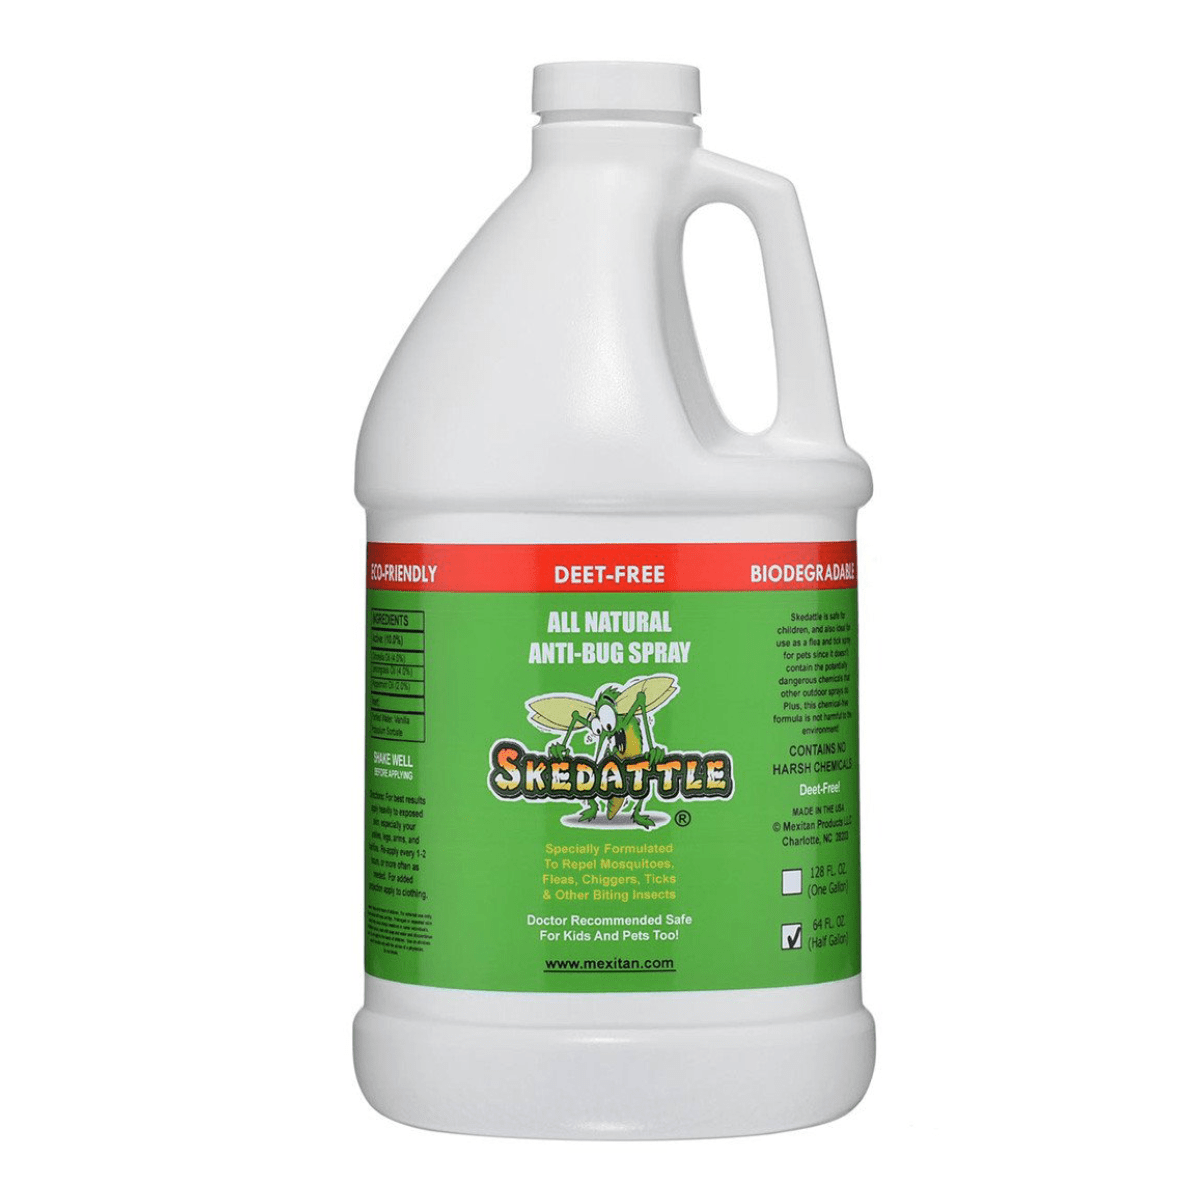 Skedattle® Anti-Bug Spray & Mosquito Repellent - Half Gallon